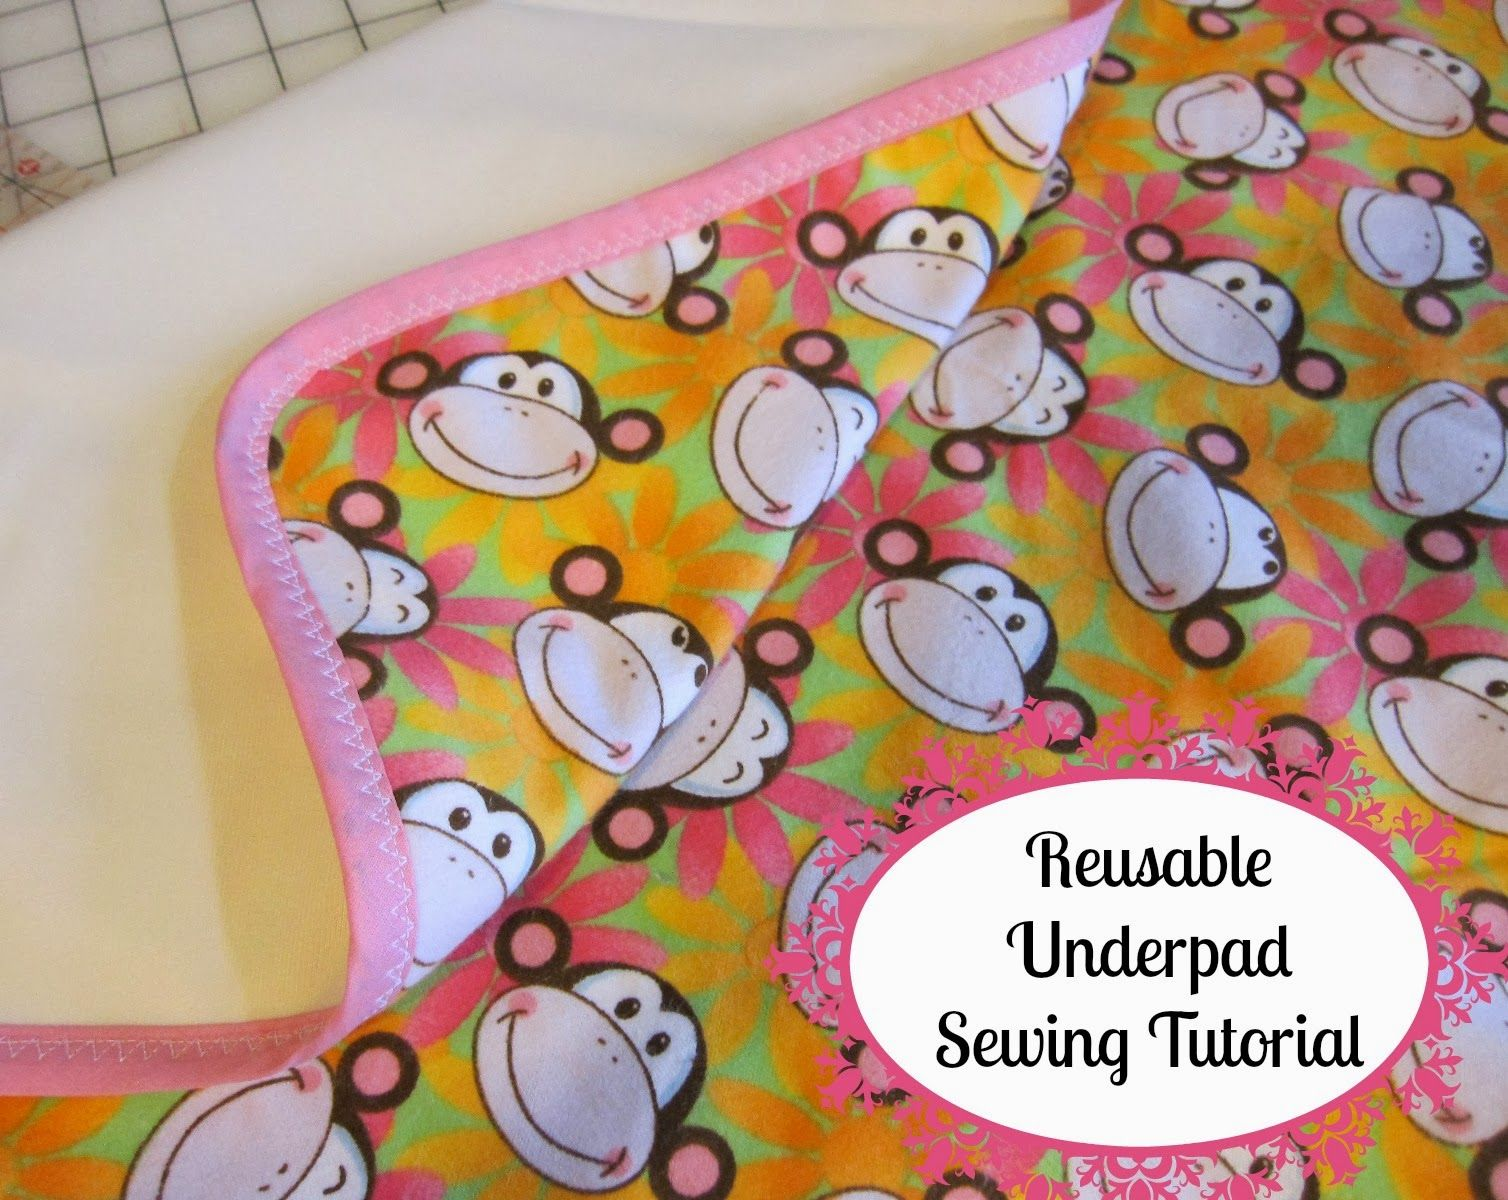 tutorial reusable absorbent underpads bed pads